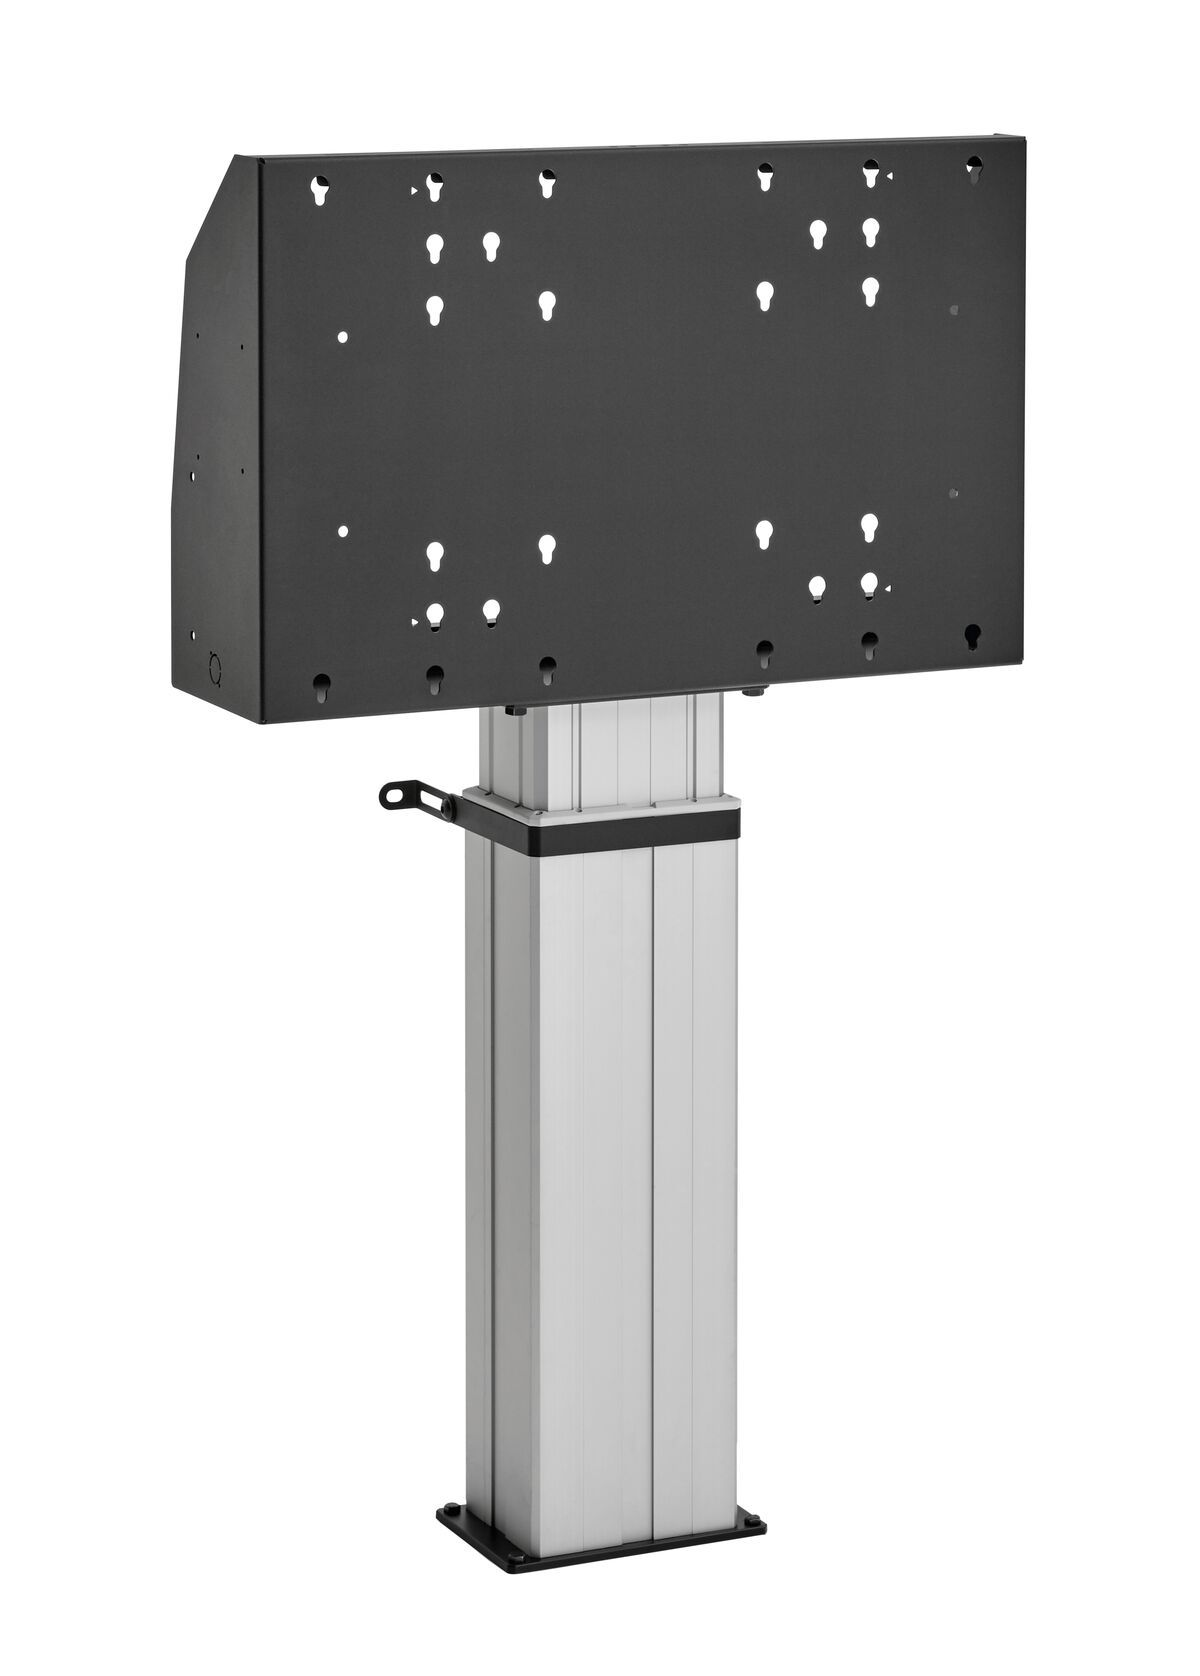 Vogel's FME5064 Motorized floor stand